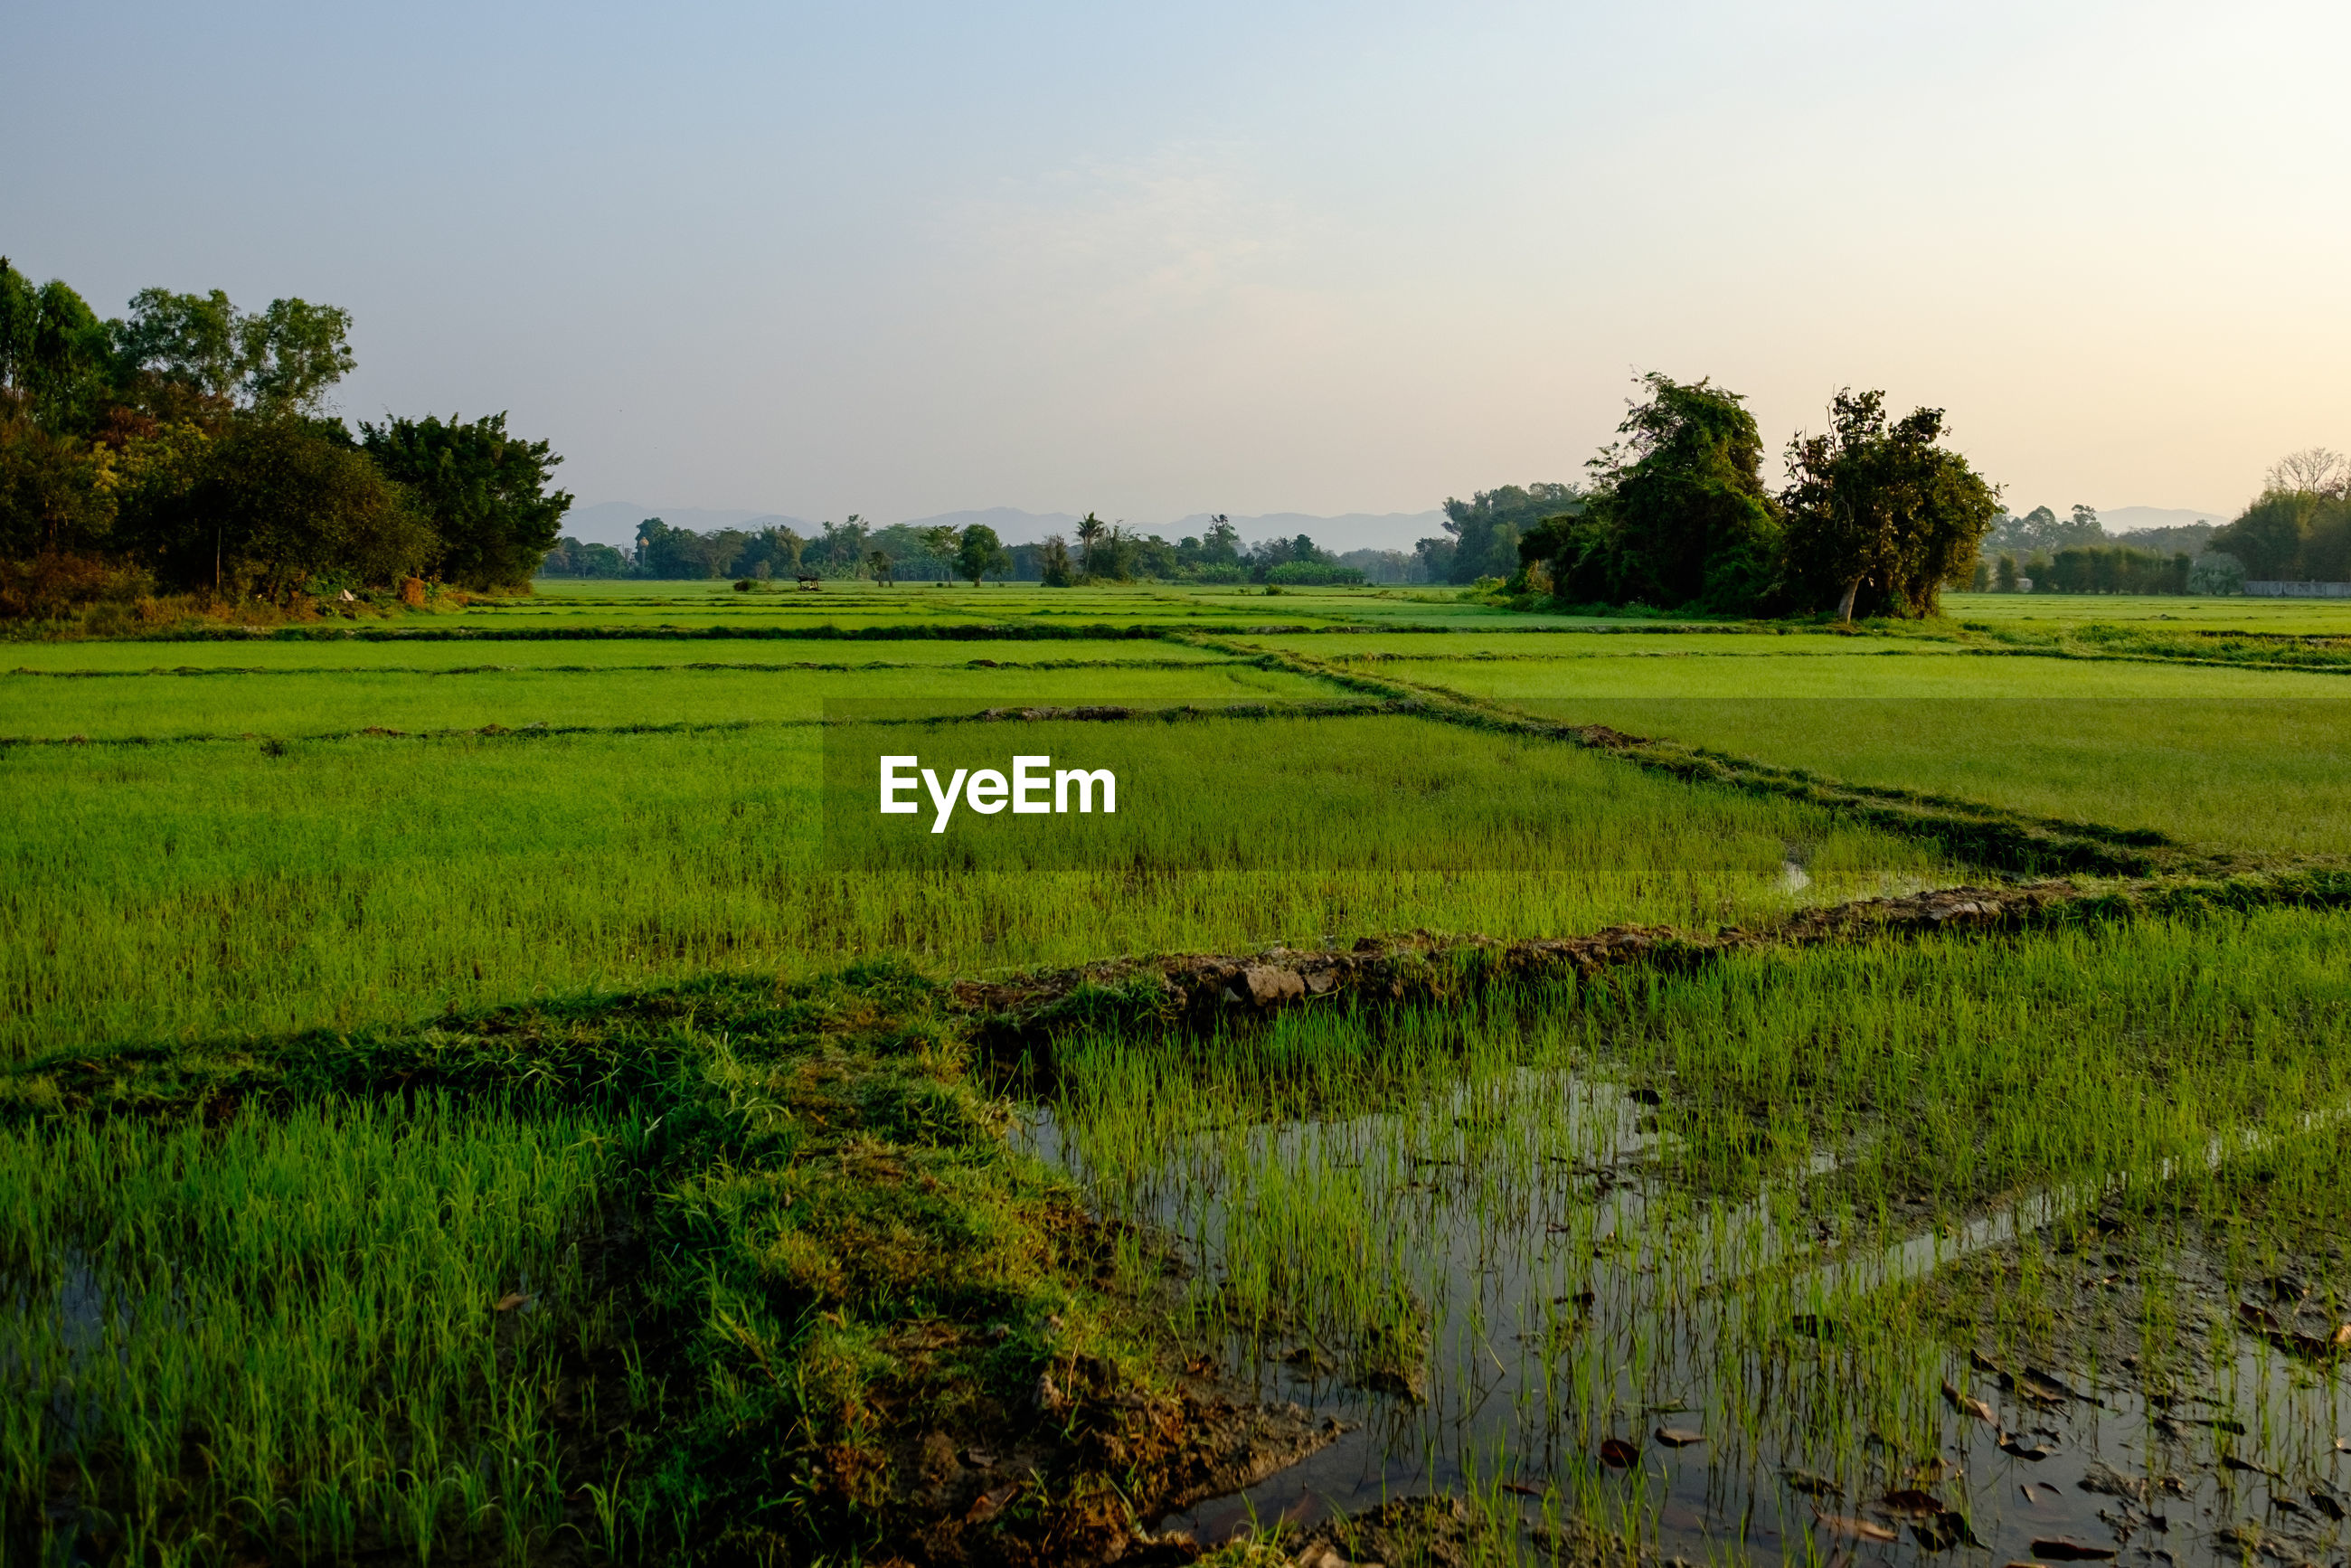 SCENIC VIEW OF RICE PADDY FIELD AGAINST SKY